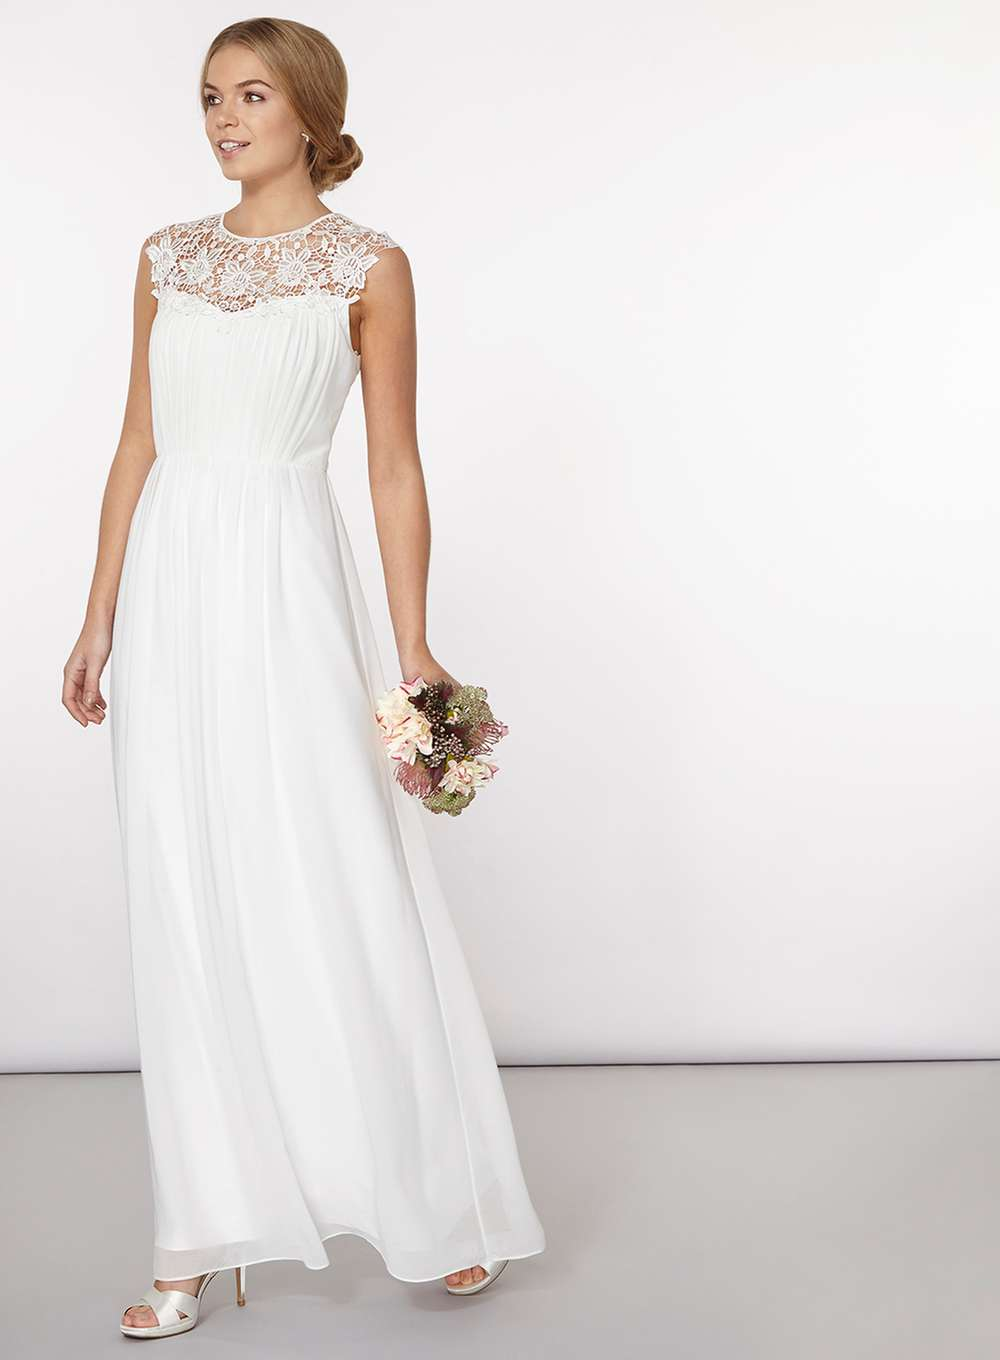 DP.Off-White 'Kathryn' Wedding Dress